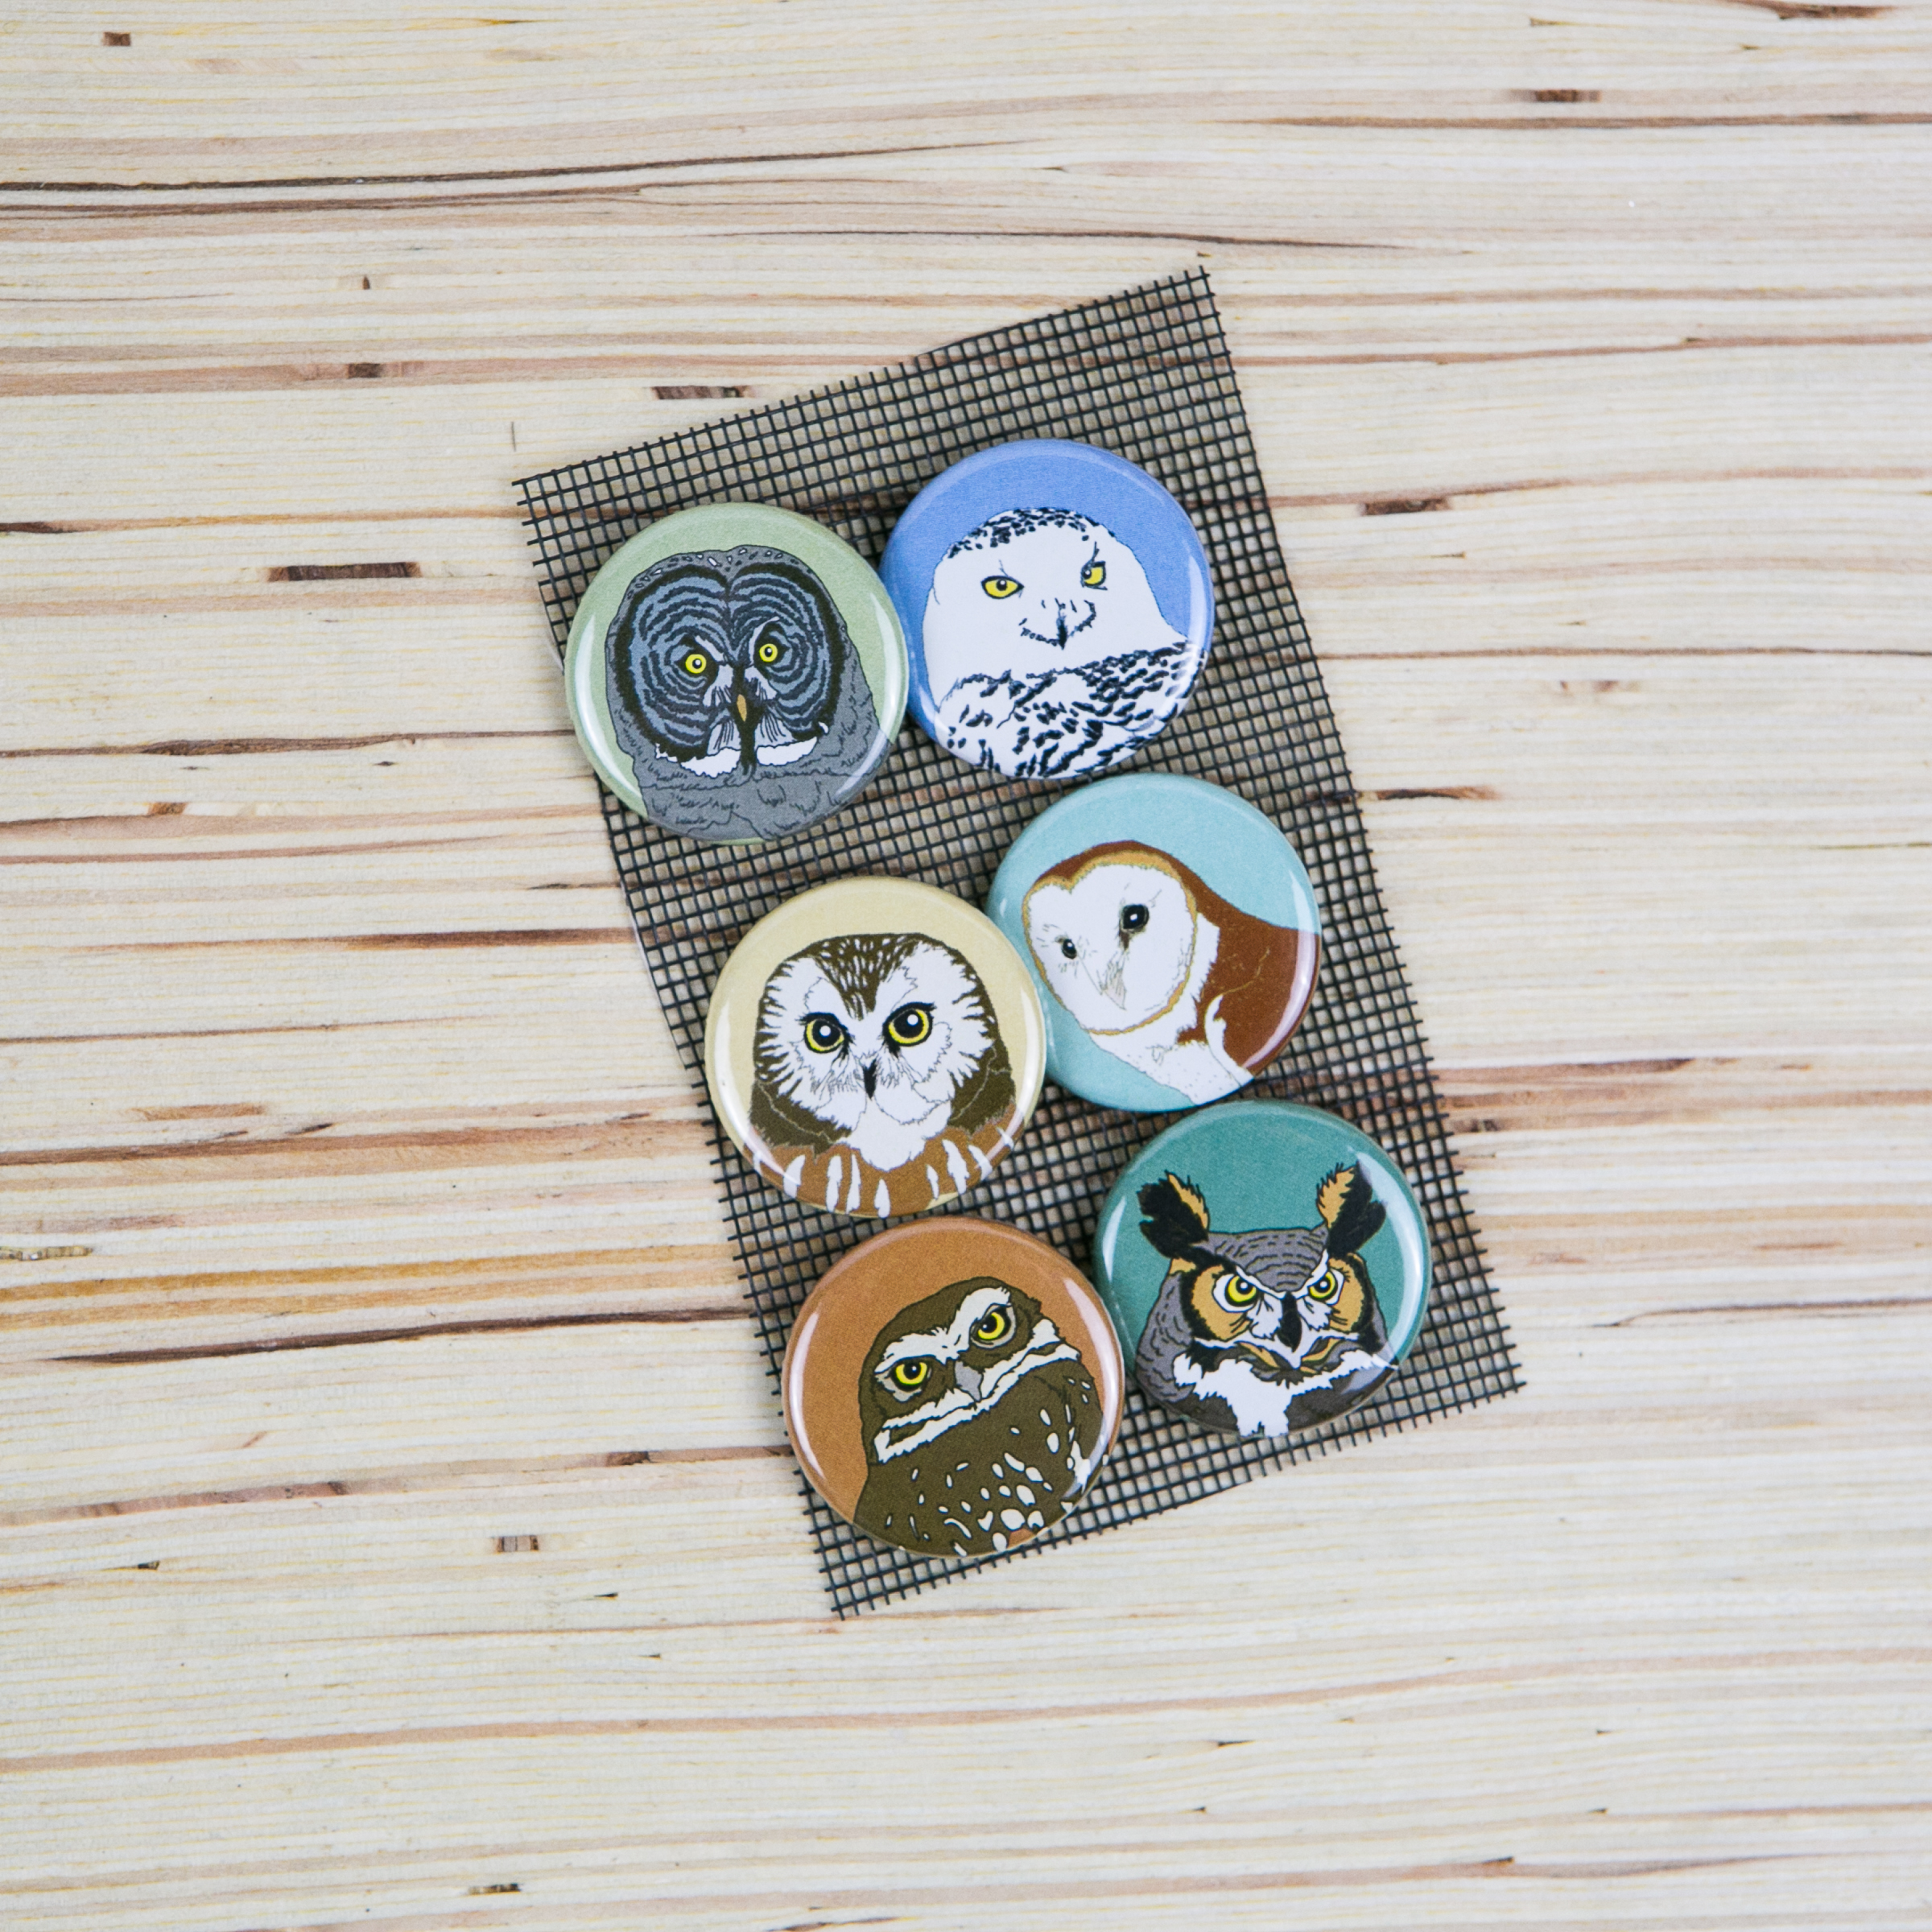 Owl pins featured in the Wonderkin Owl Box